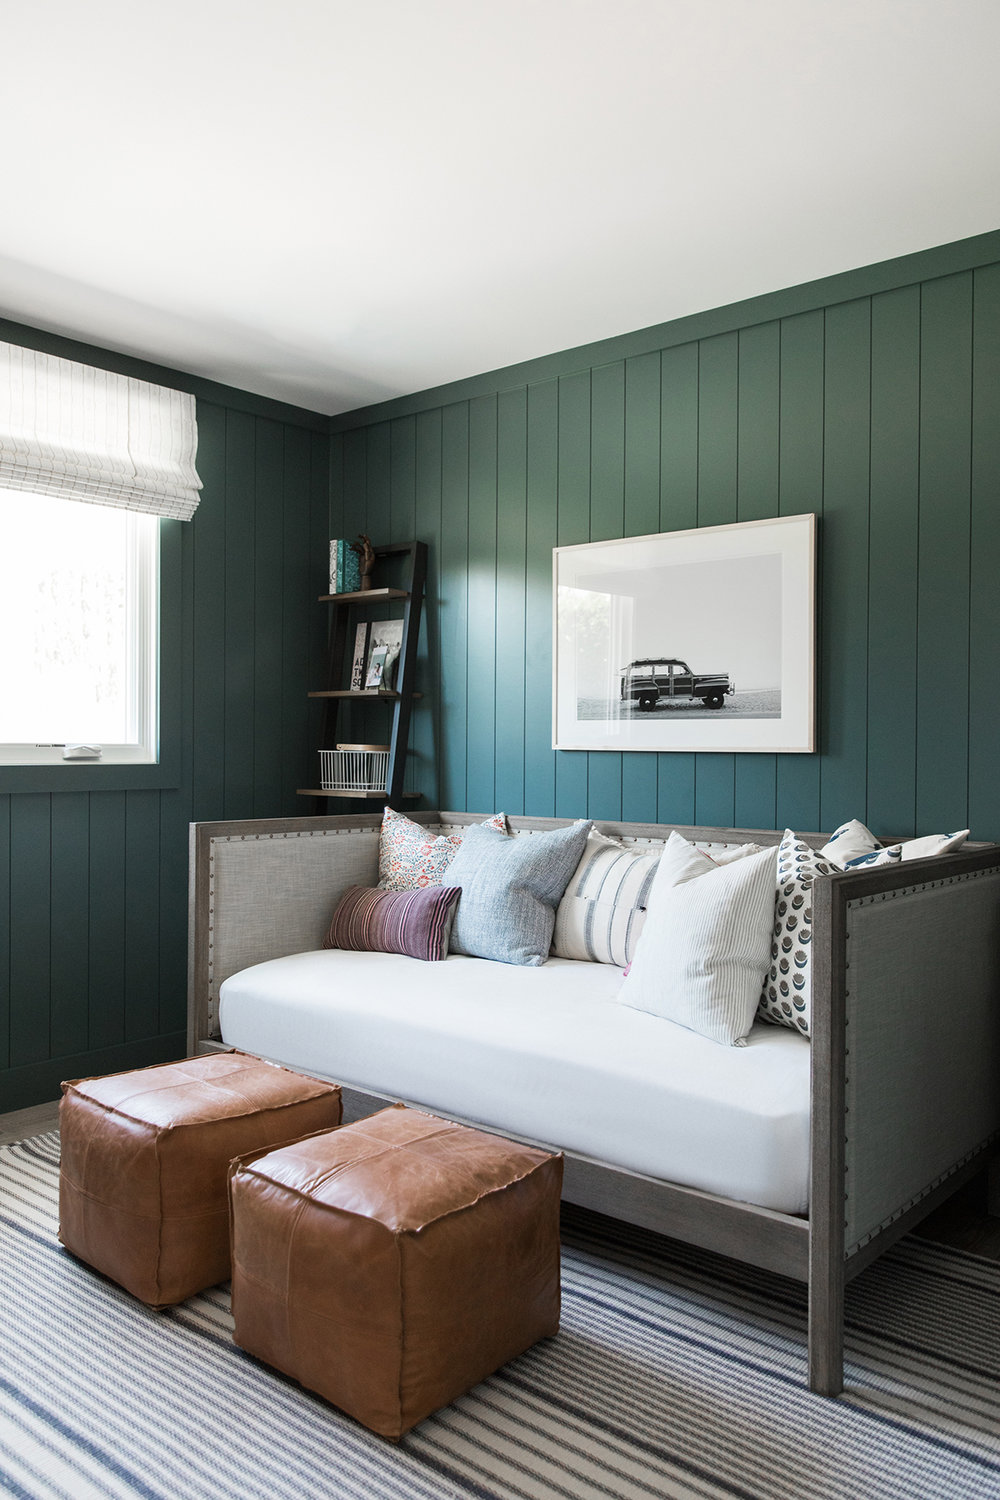 Cool and moody office space, dark office space with vertical paneling, playroom with daybed, dark room with daybed | Studio McGee Blog